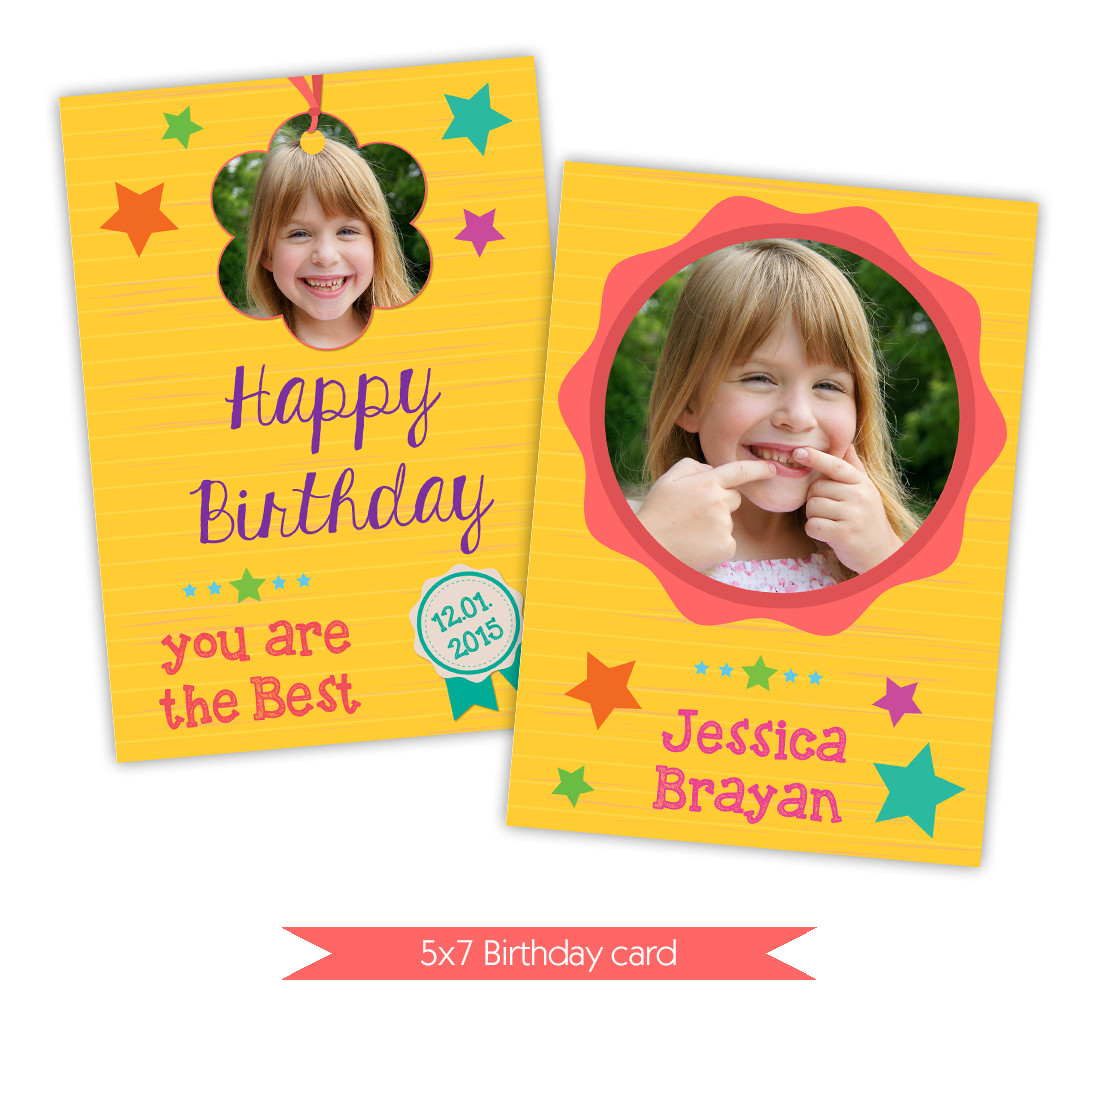 Photoshop Birthday Card Template Nuwzz Happy Birthday Card Shop Template Bright Yellow